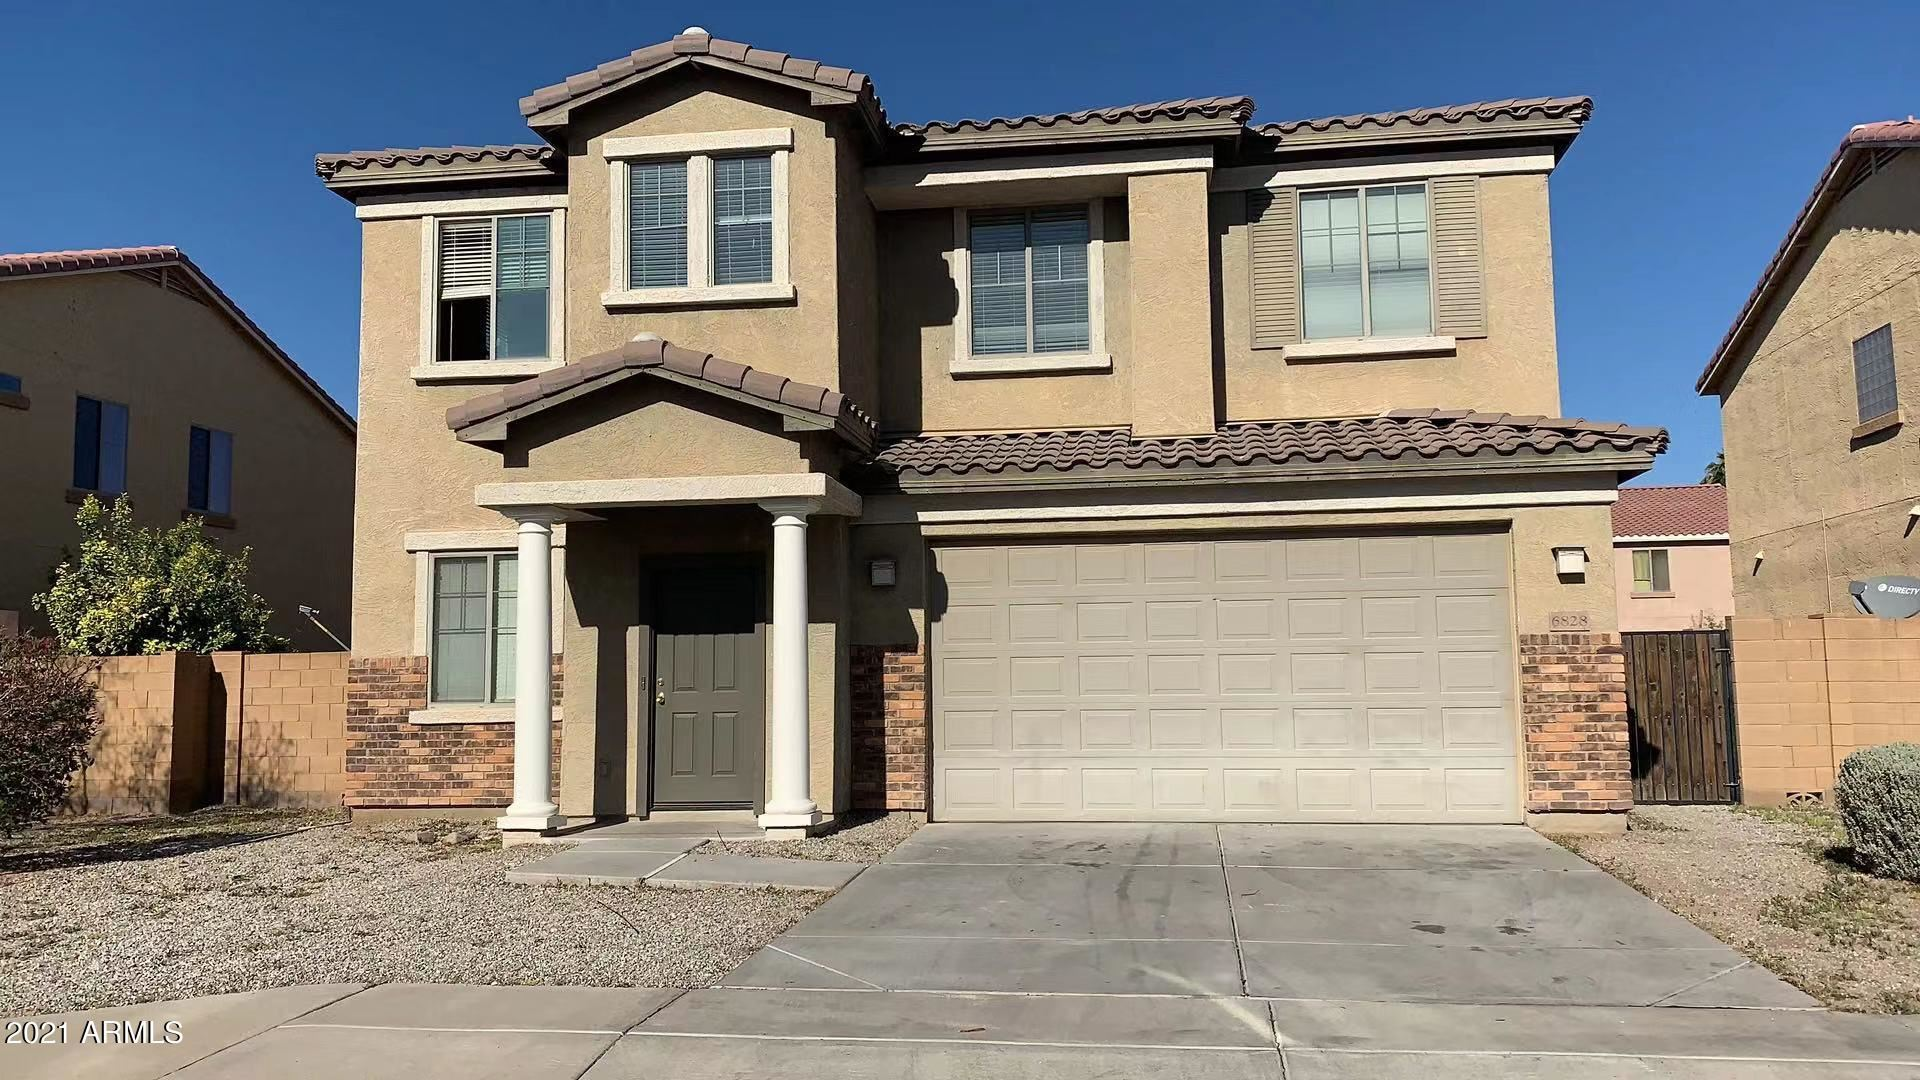 Photo of 6828 S 68TH Drive, Laveen, AZ 85339 (MLS # 6200818)